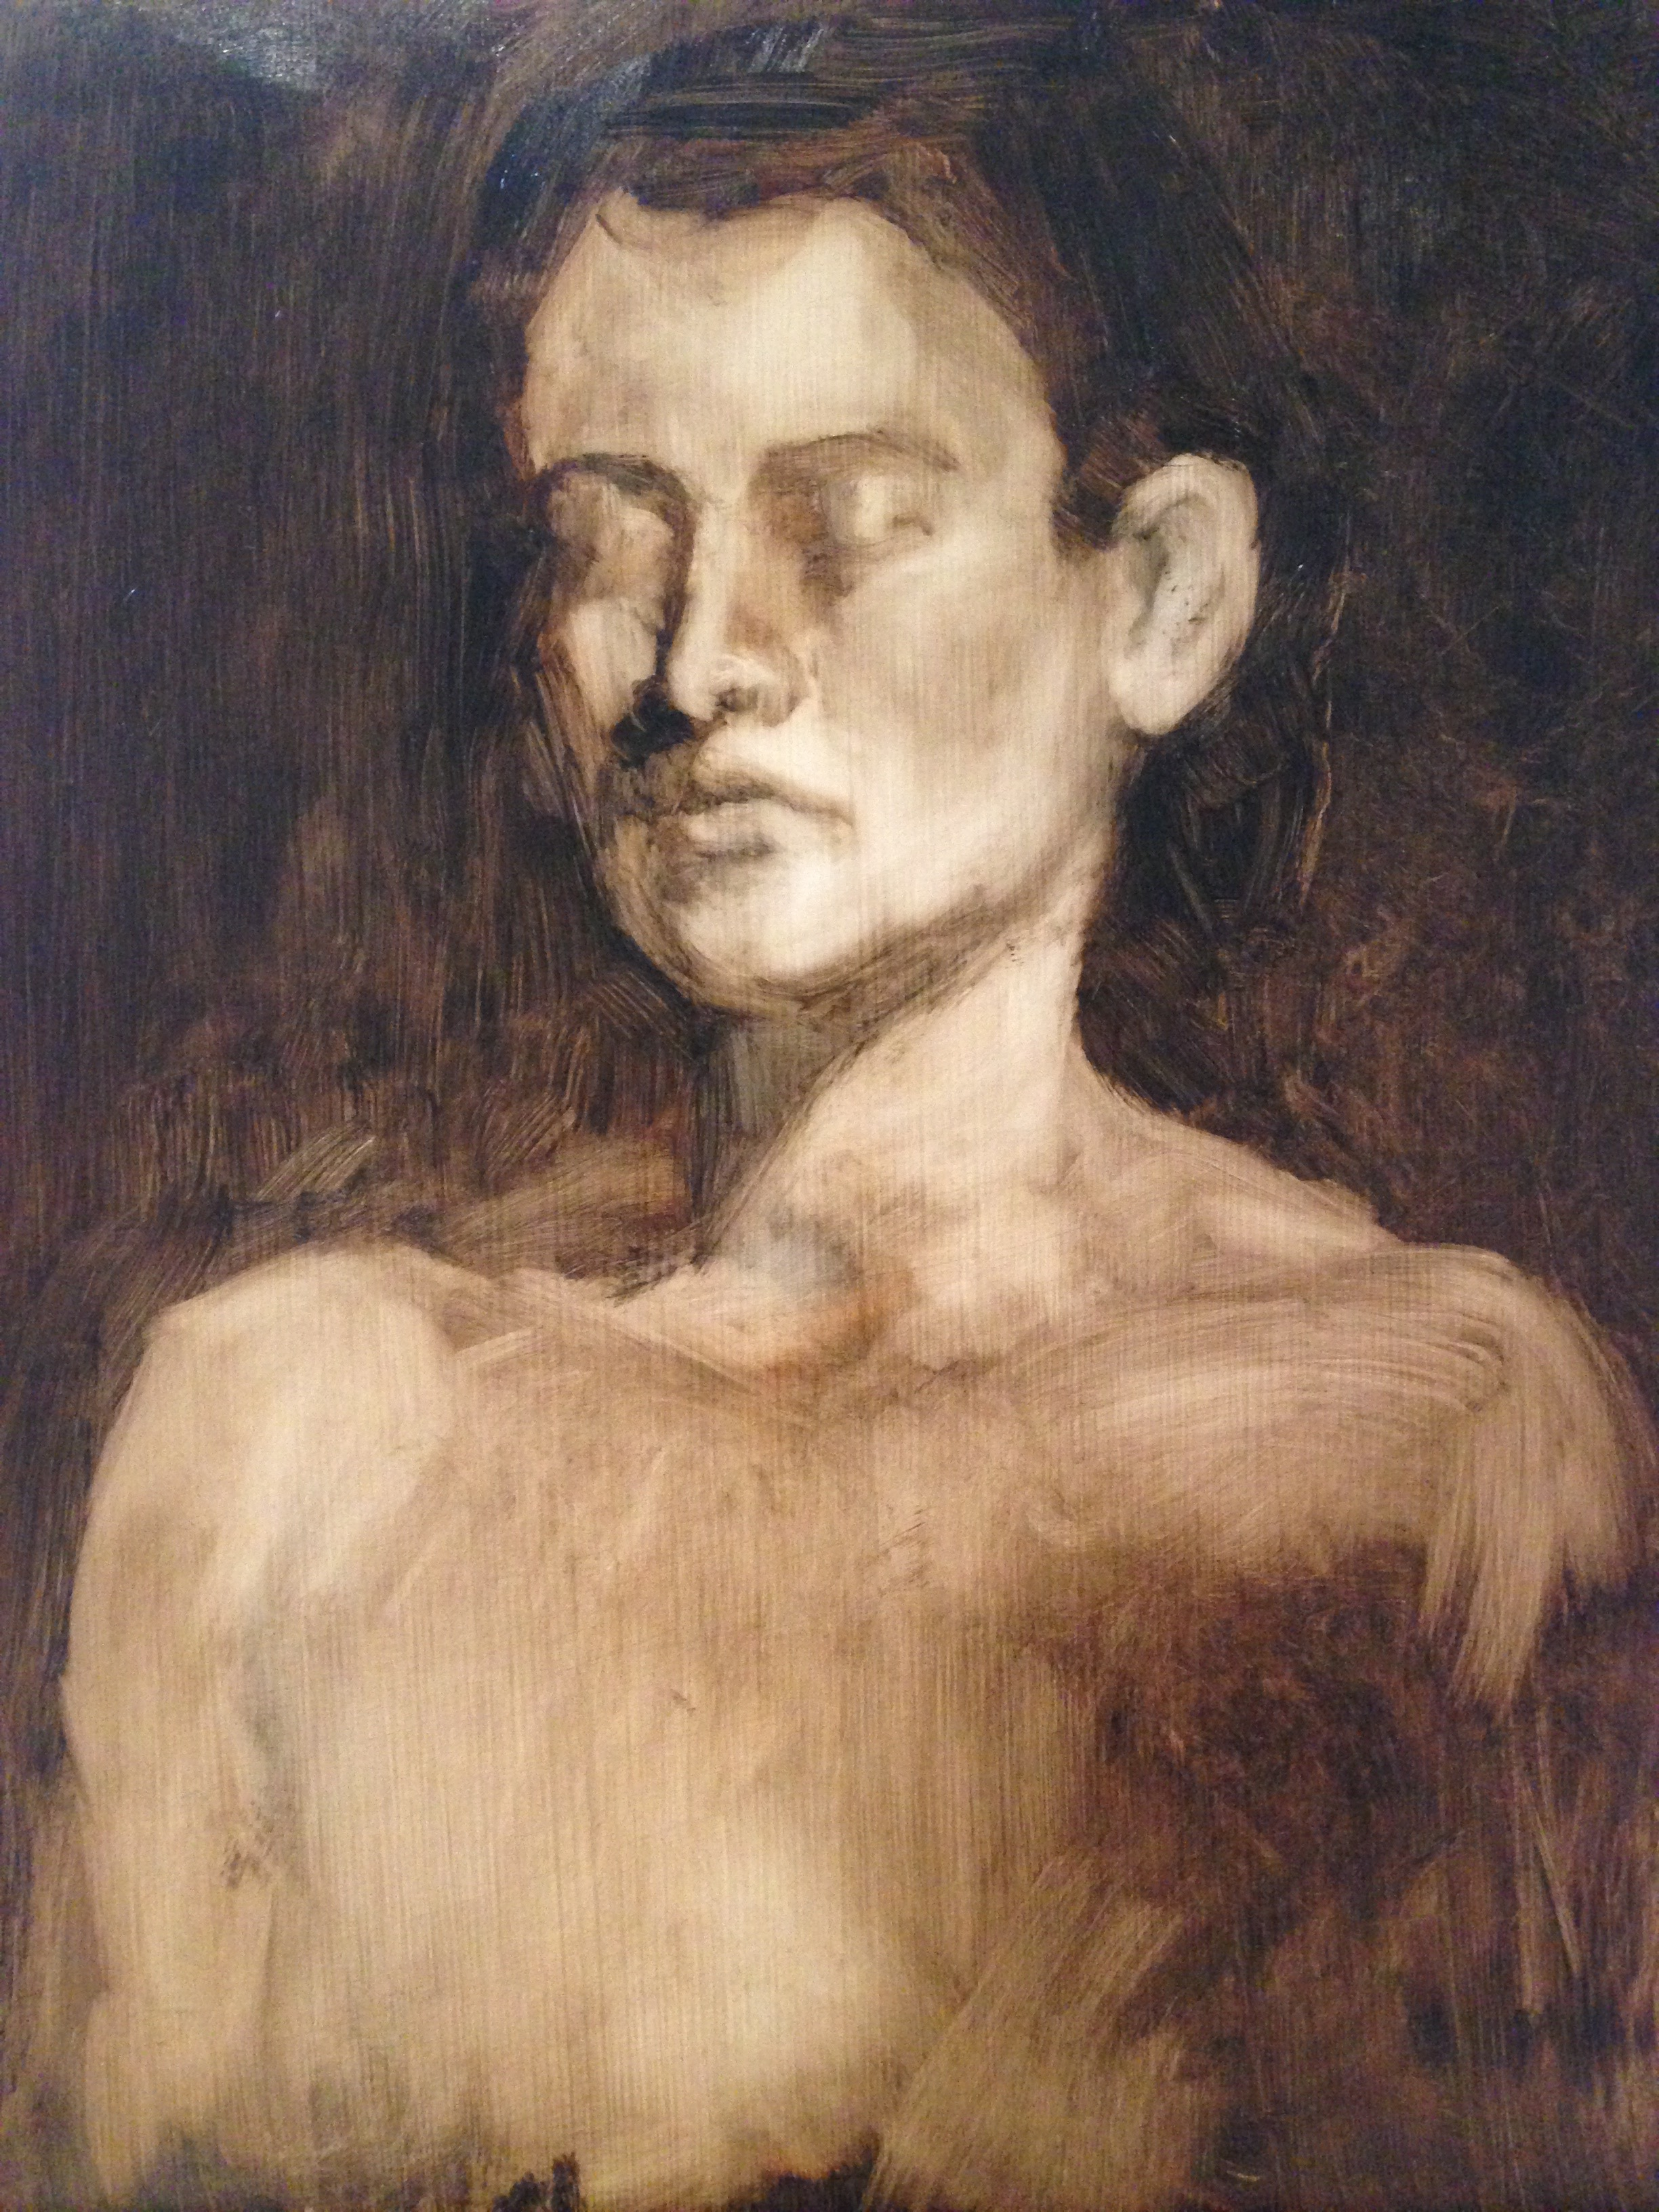 Oil on gessoed paper 10.5x15 inches 2015